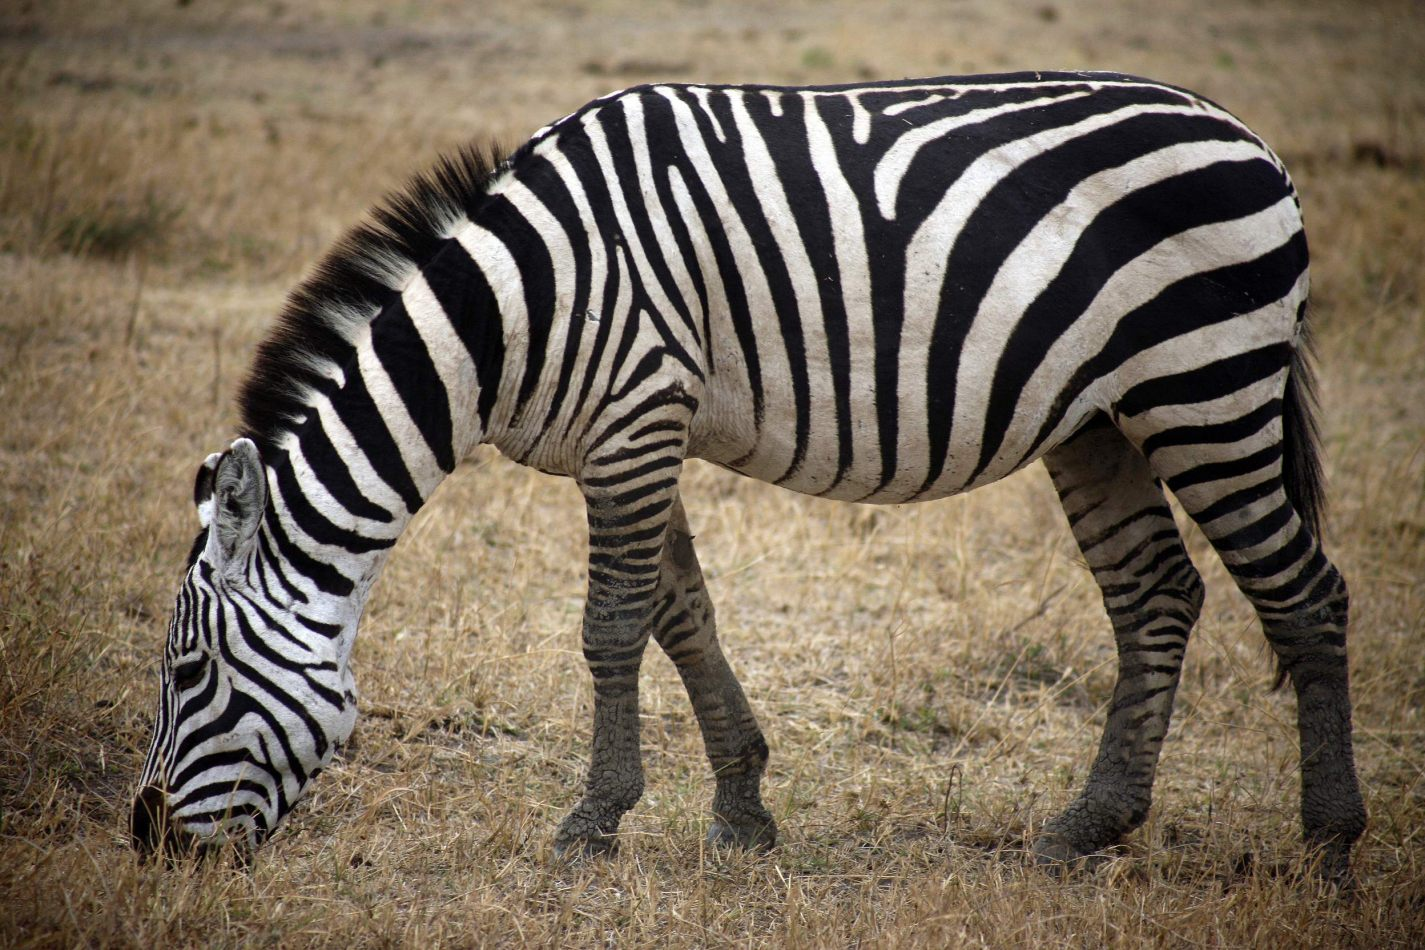 Anthony Ellis Photography: Mzungu - Grazing Zebra